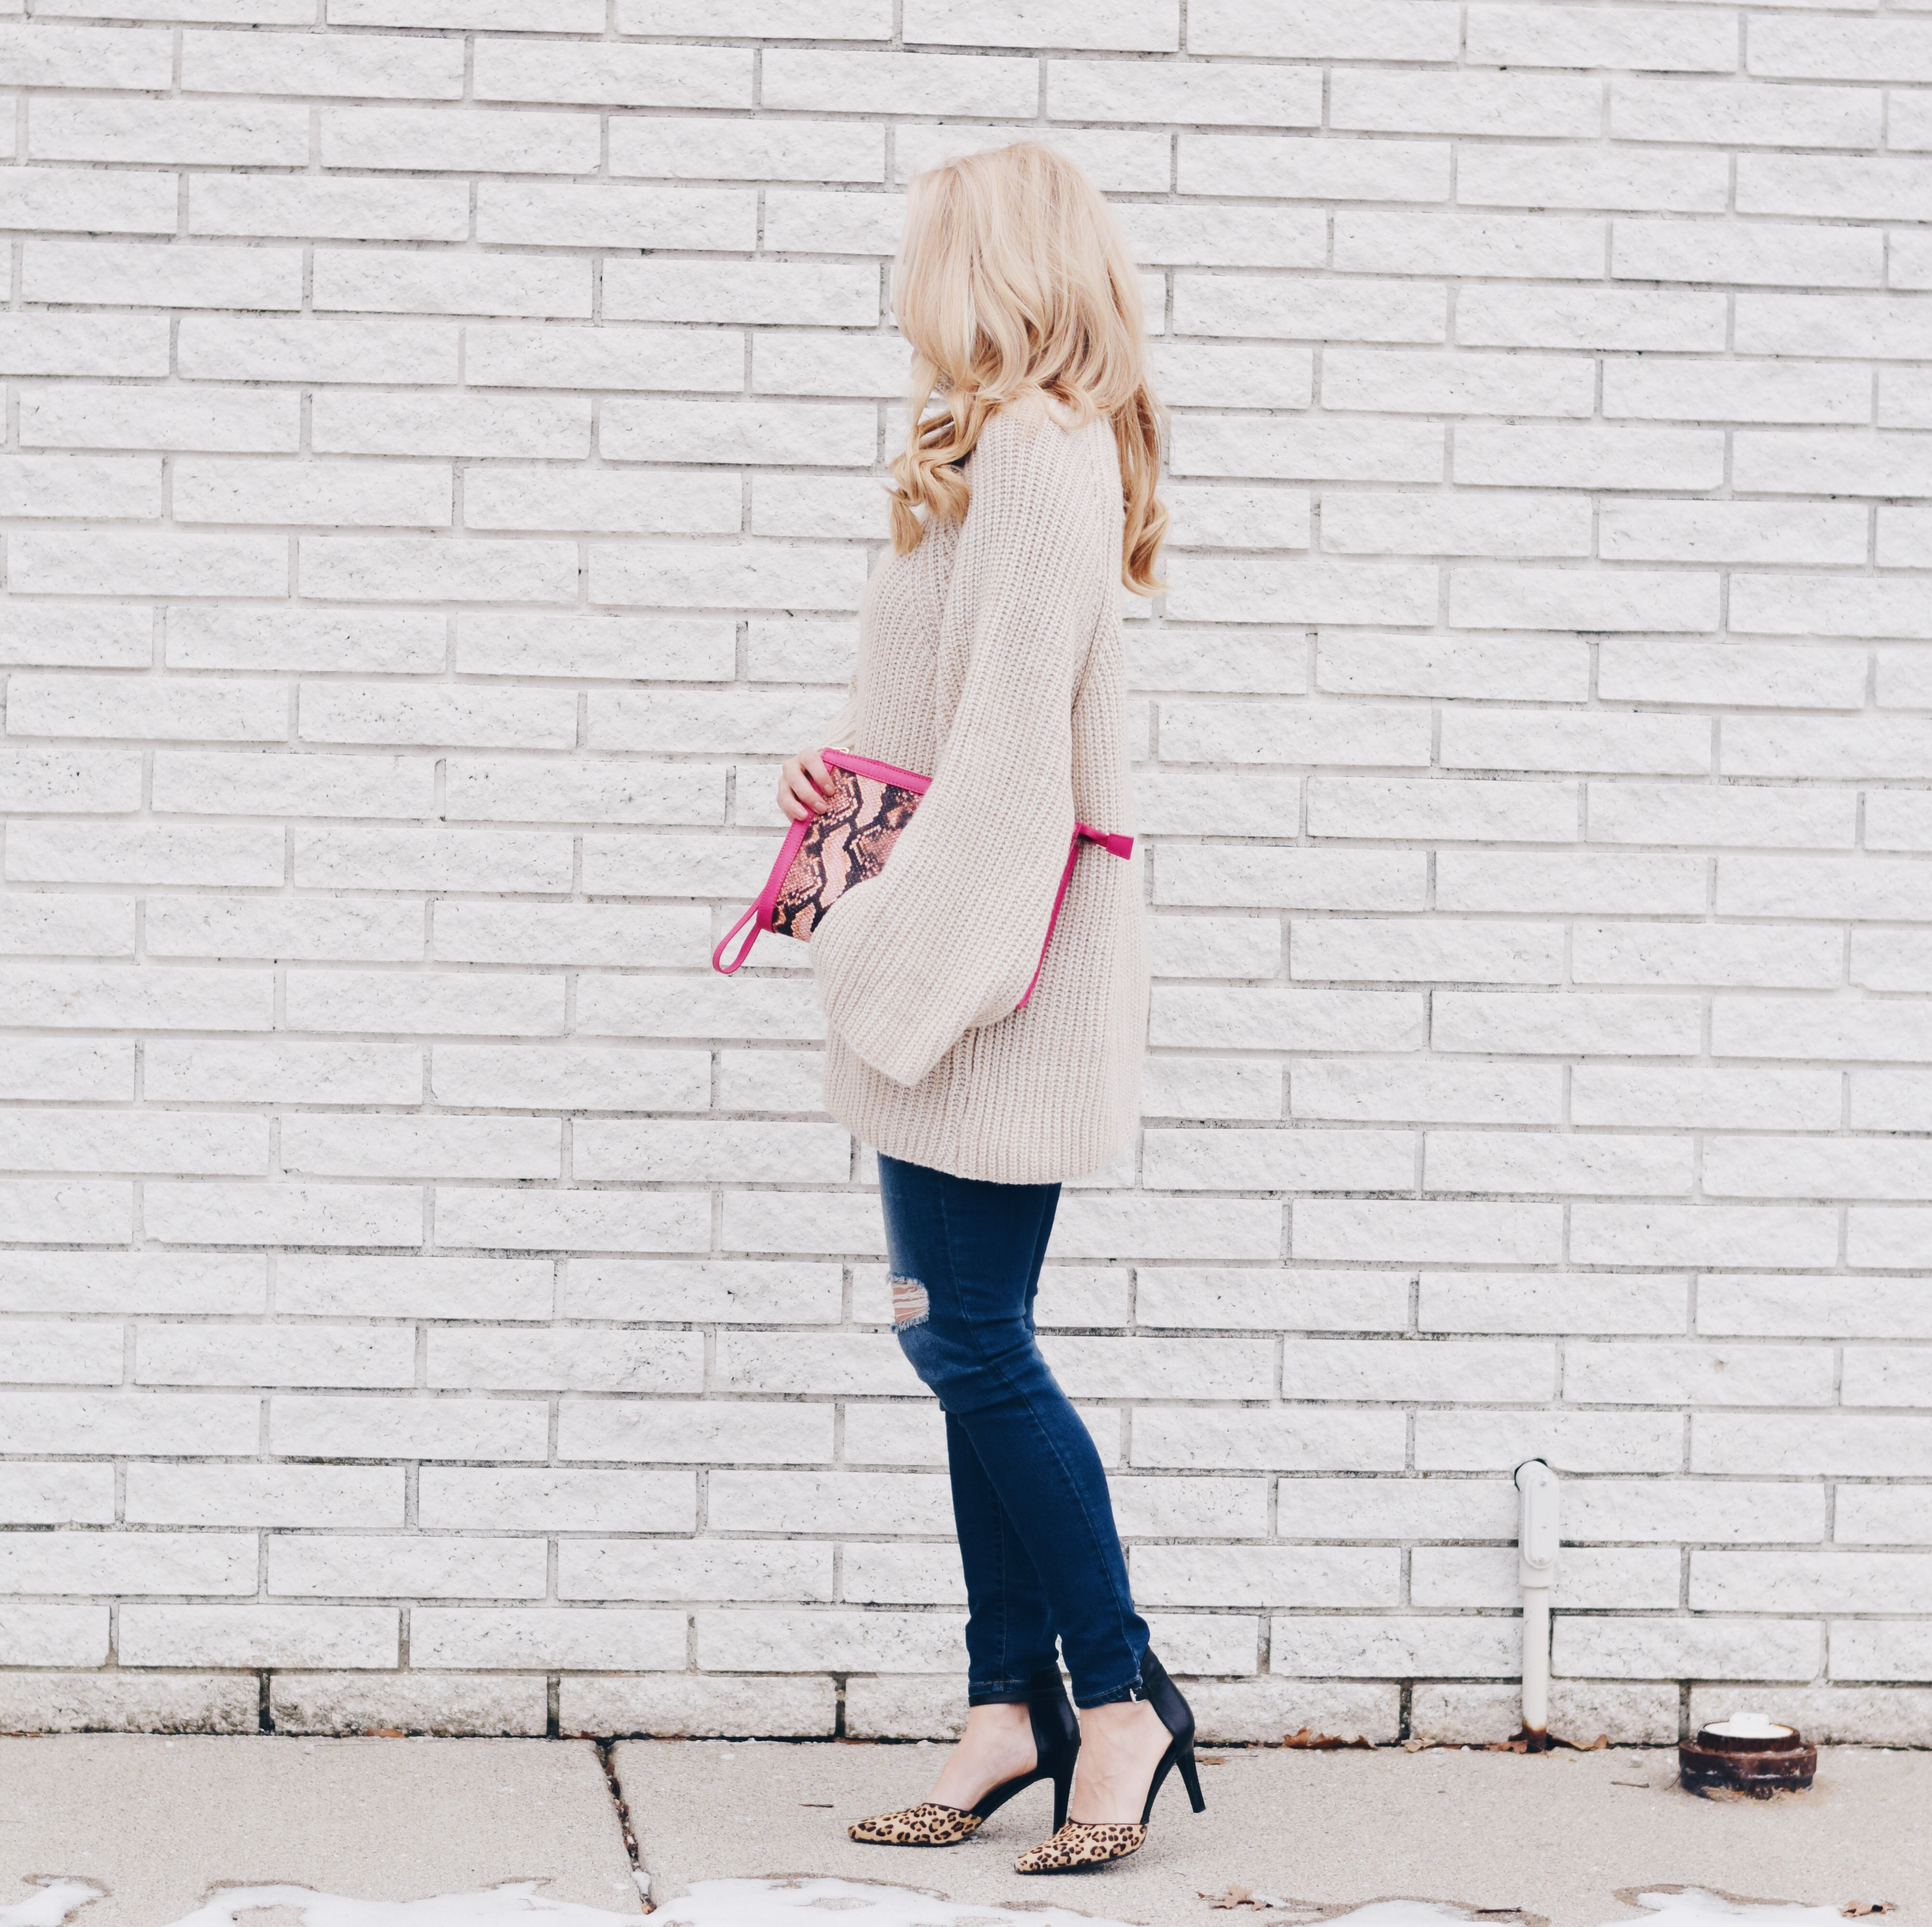 OVERSIZED MOCK NECK SWEATER + JEANS